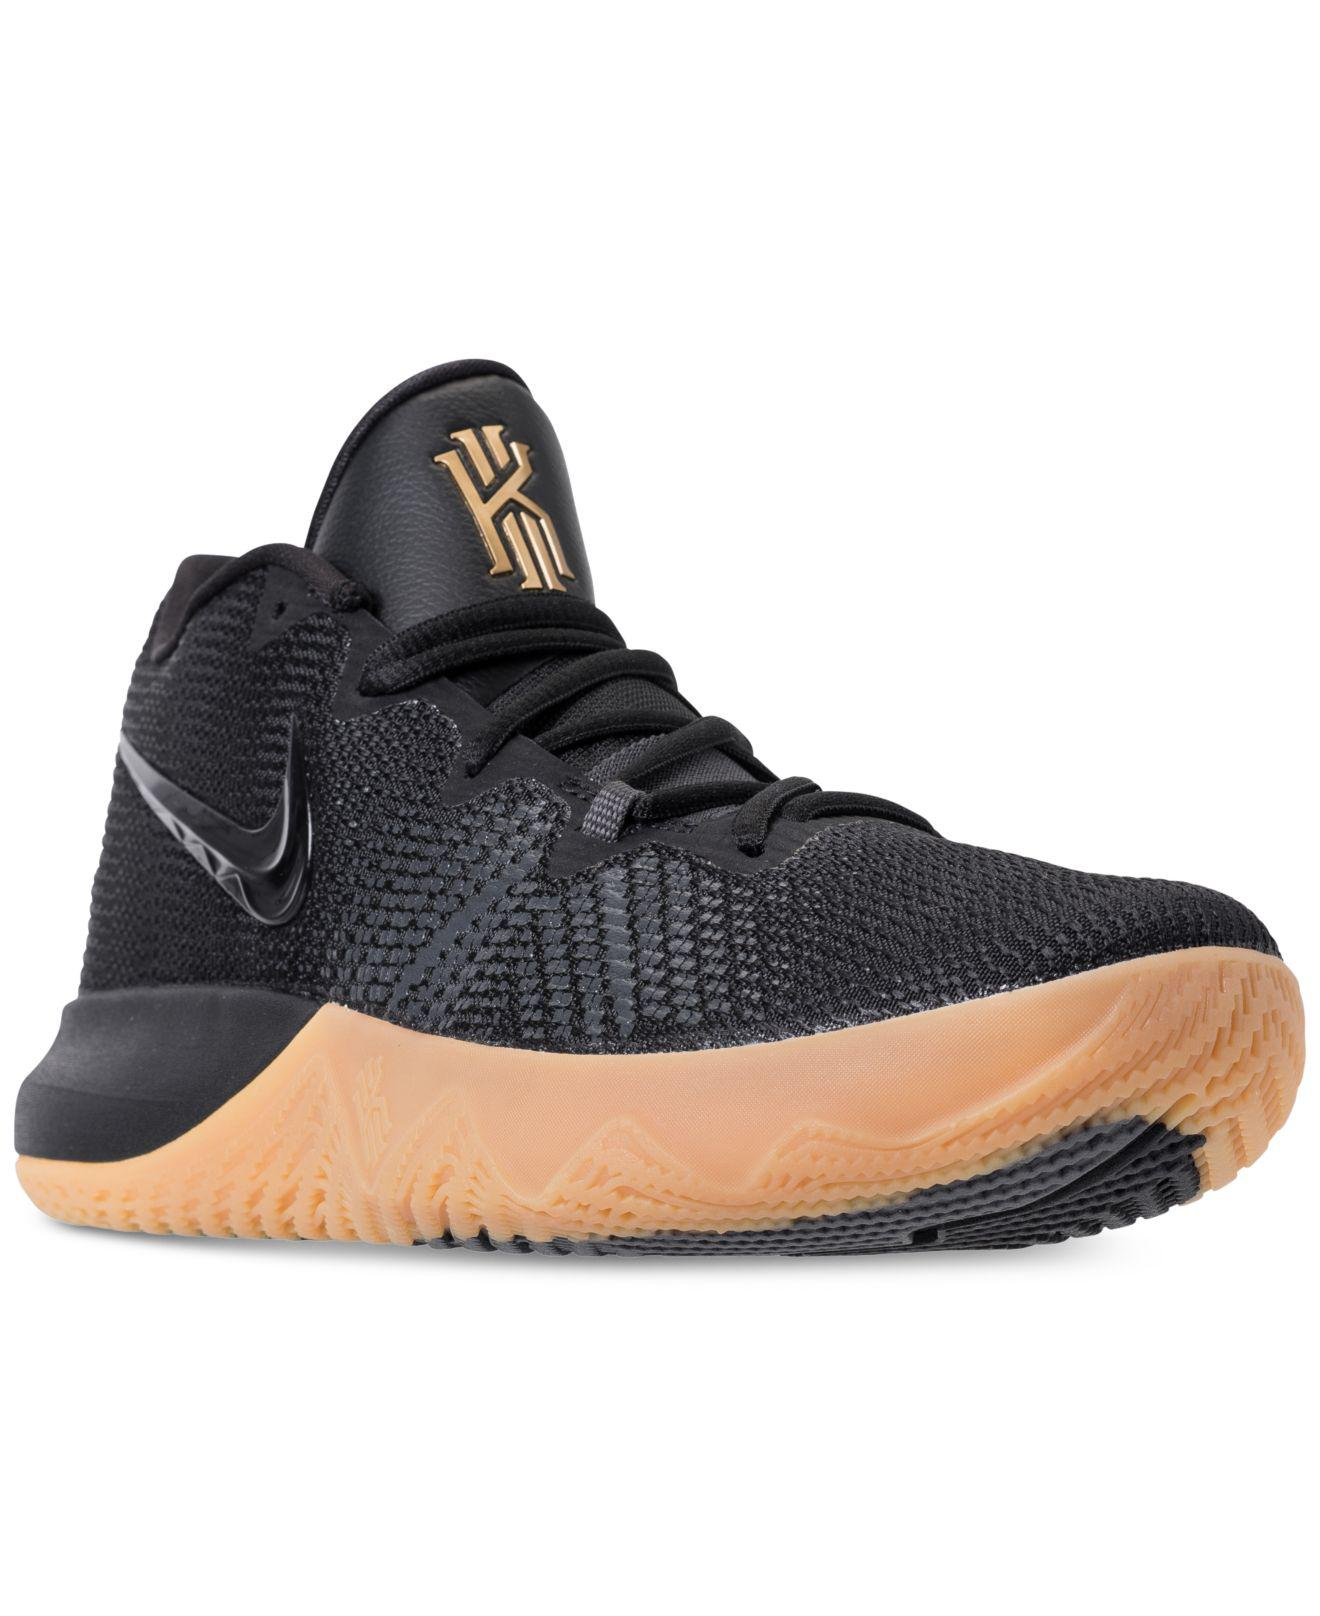 Nike Men's Kyrie Flytrap Basketball Sneakers from Finish Line yRml7MvsBA